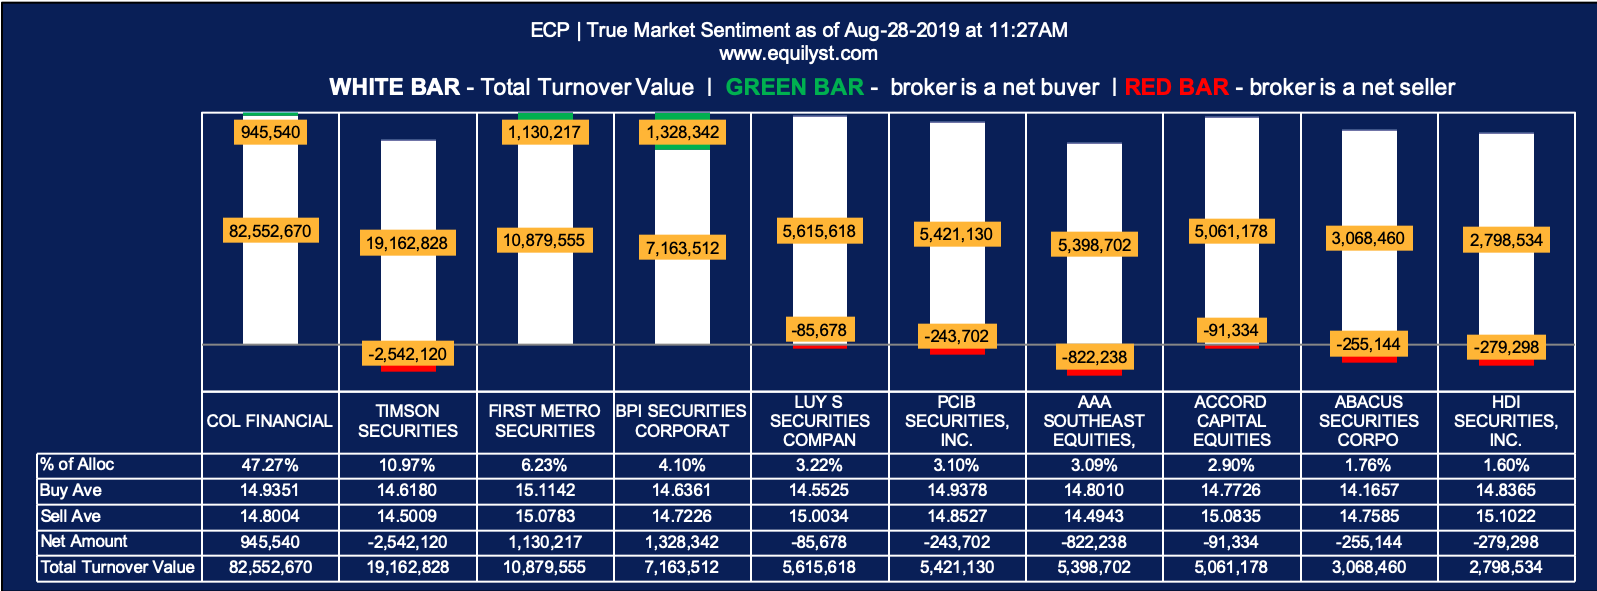 Easycall Comm. Phils. (ECP) - True Market Sentiment Intraday 1 - 8.28.2019